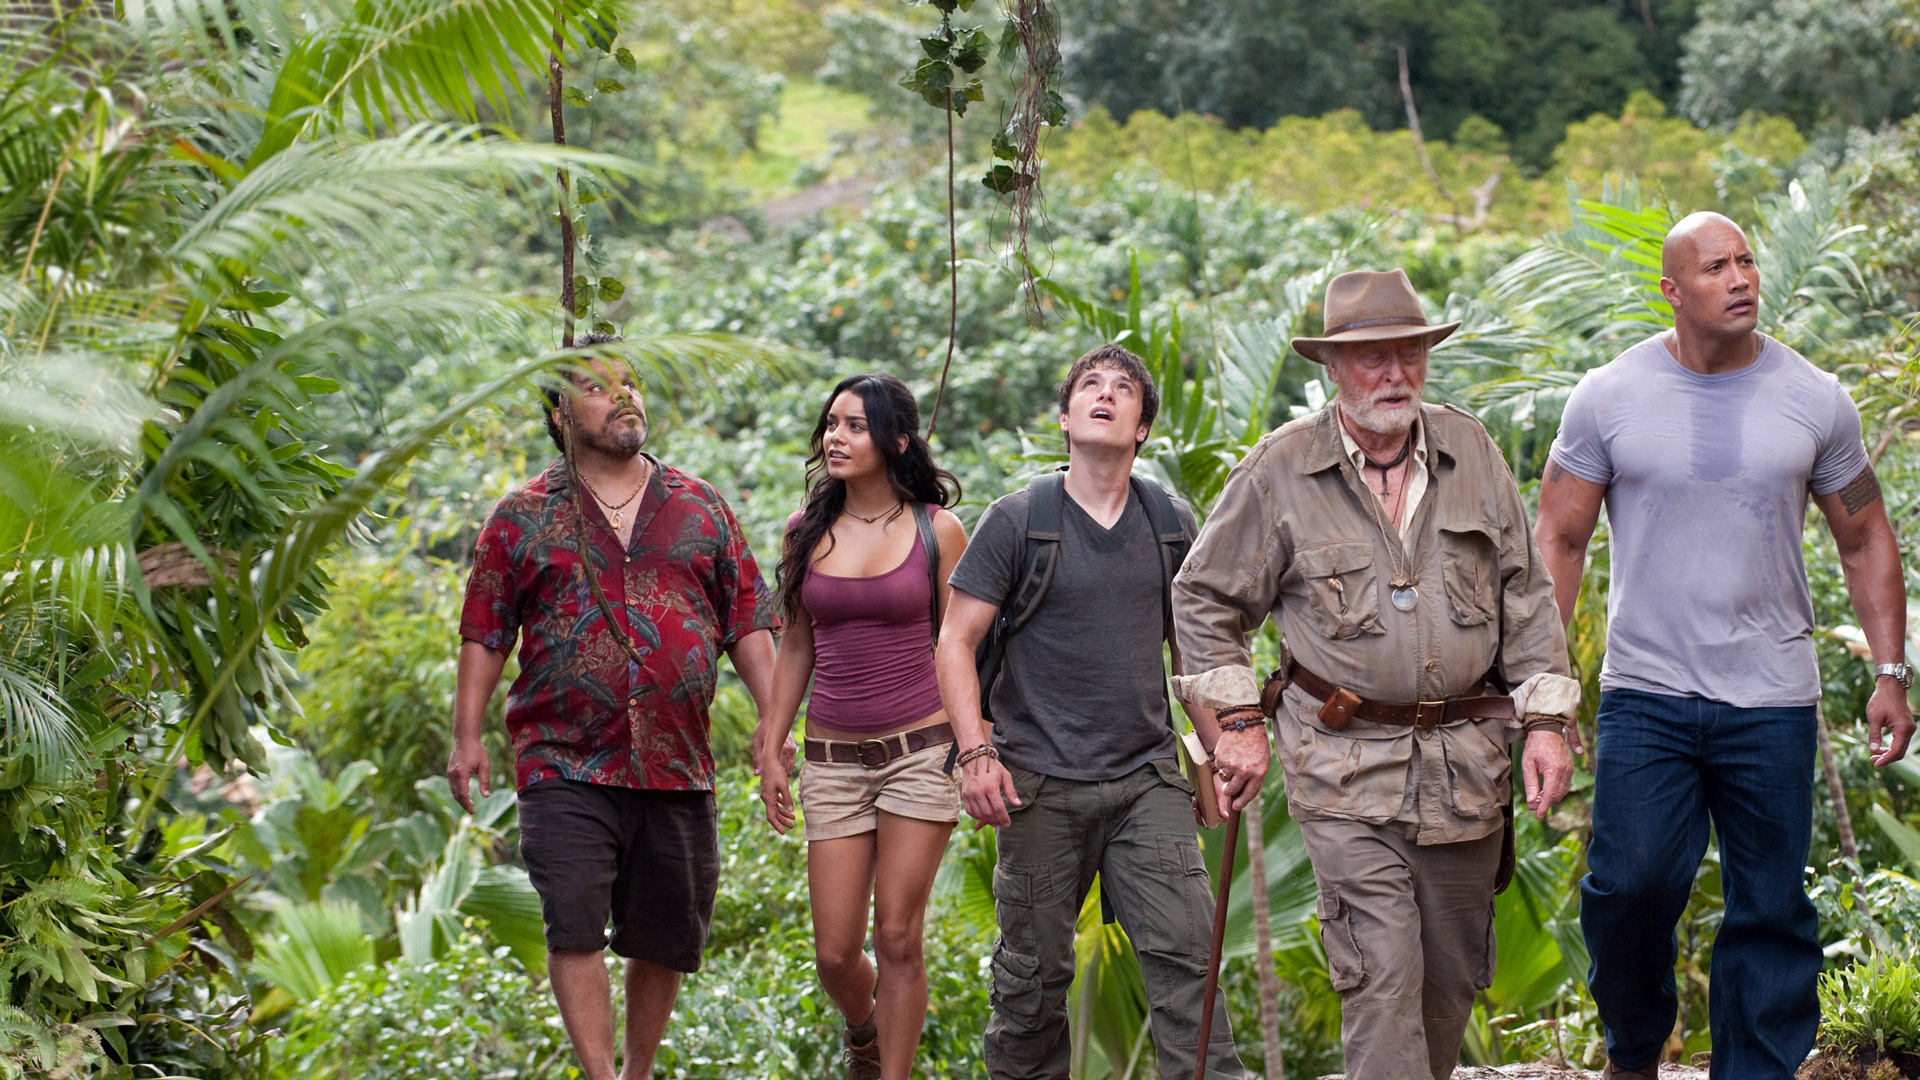 tnt-journey-2-the-mysterious-island